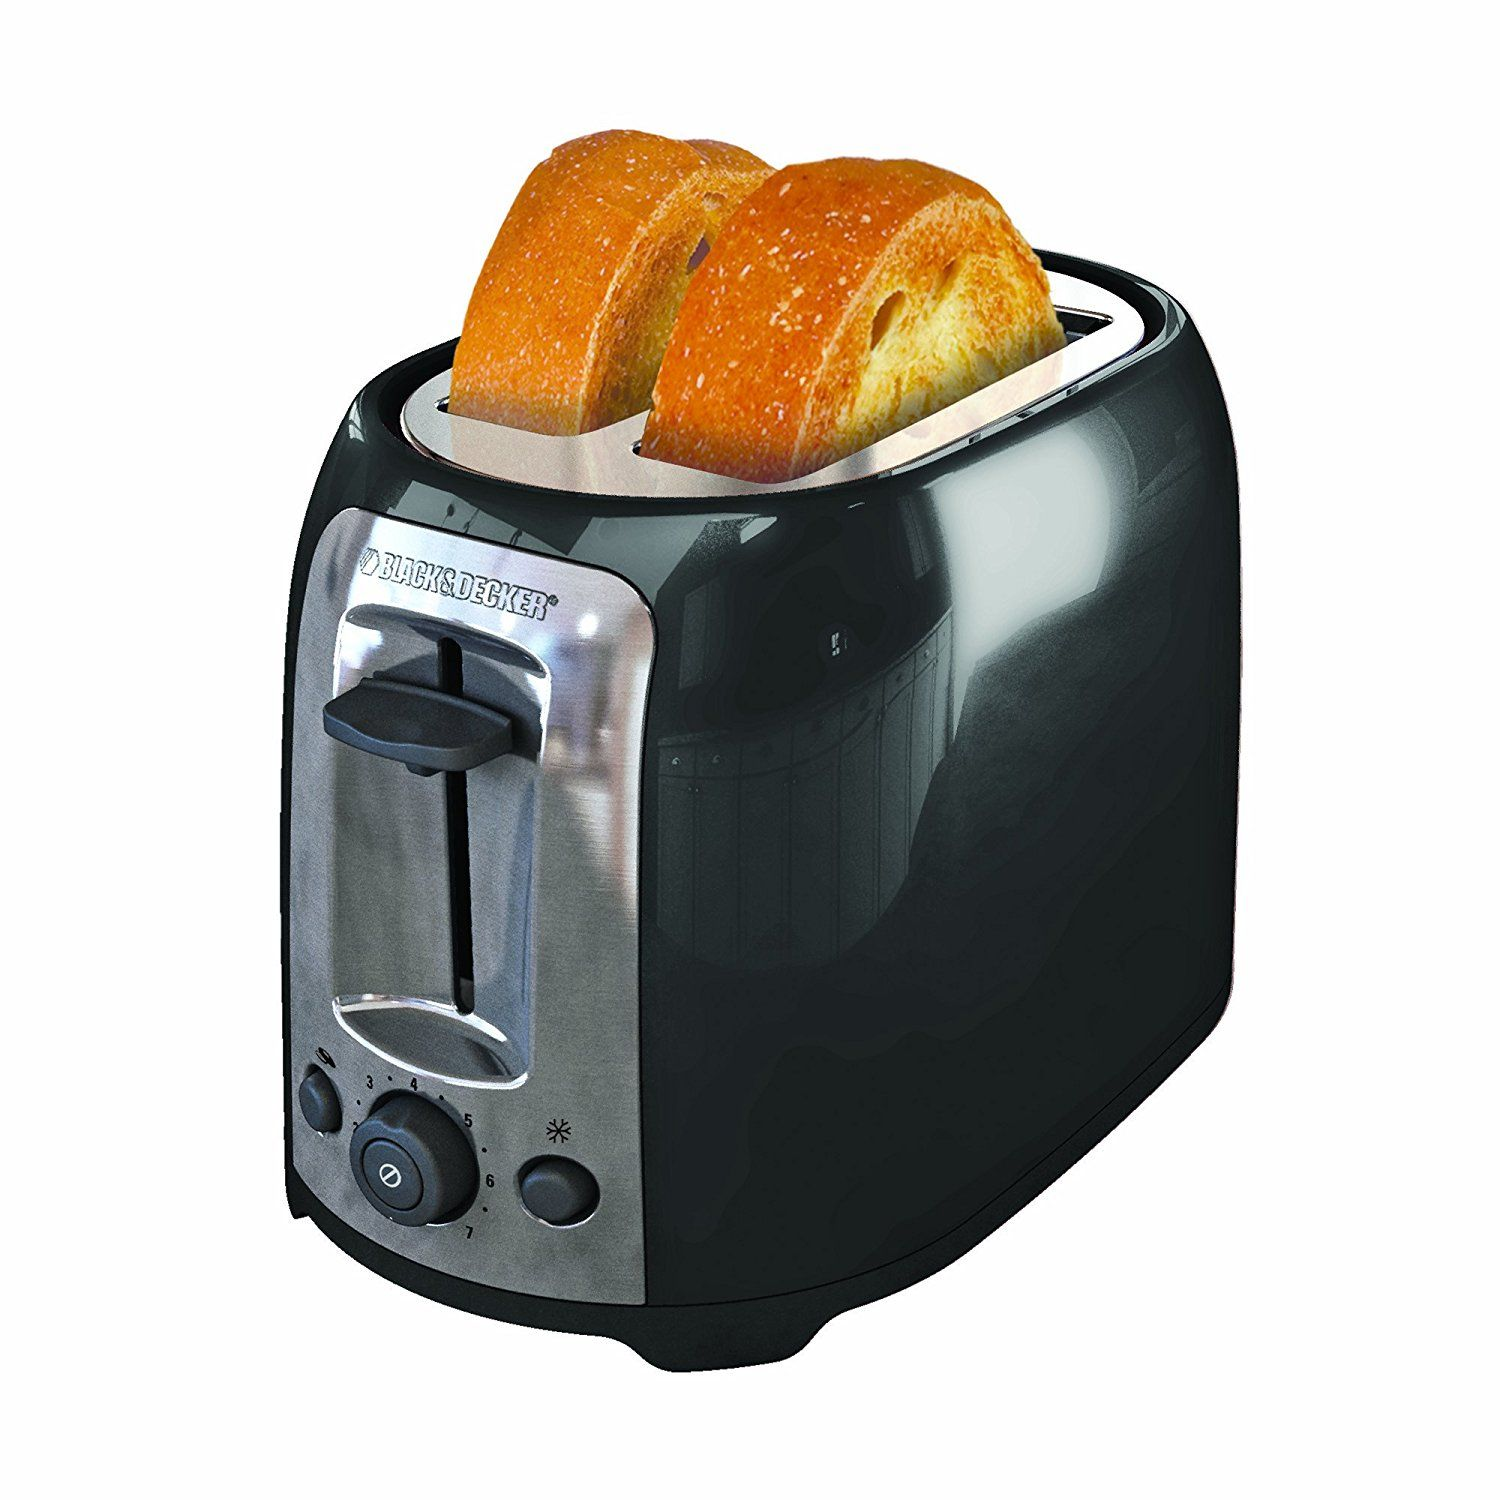 image toasters toaster menlyn satin metro appliances ware online with for centre shop slice russell hobbs home and